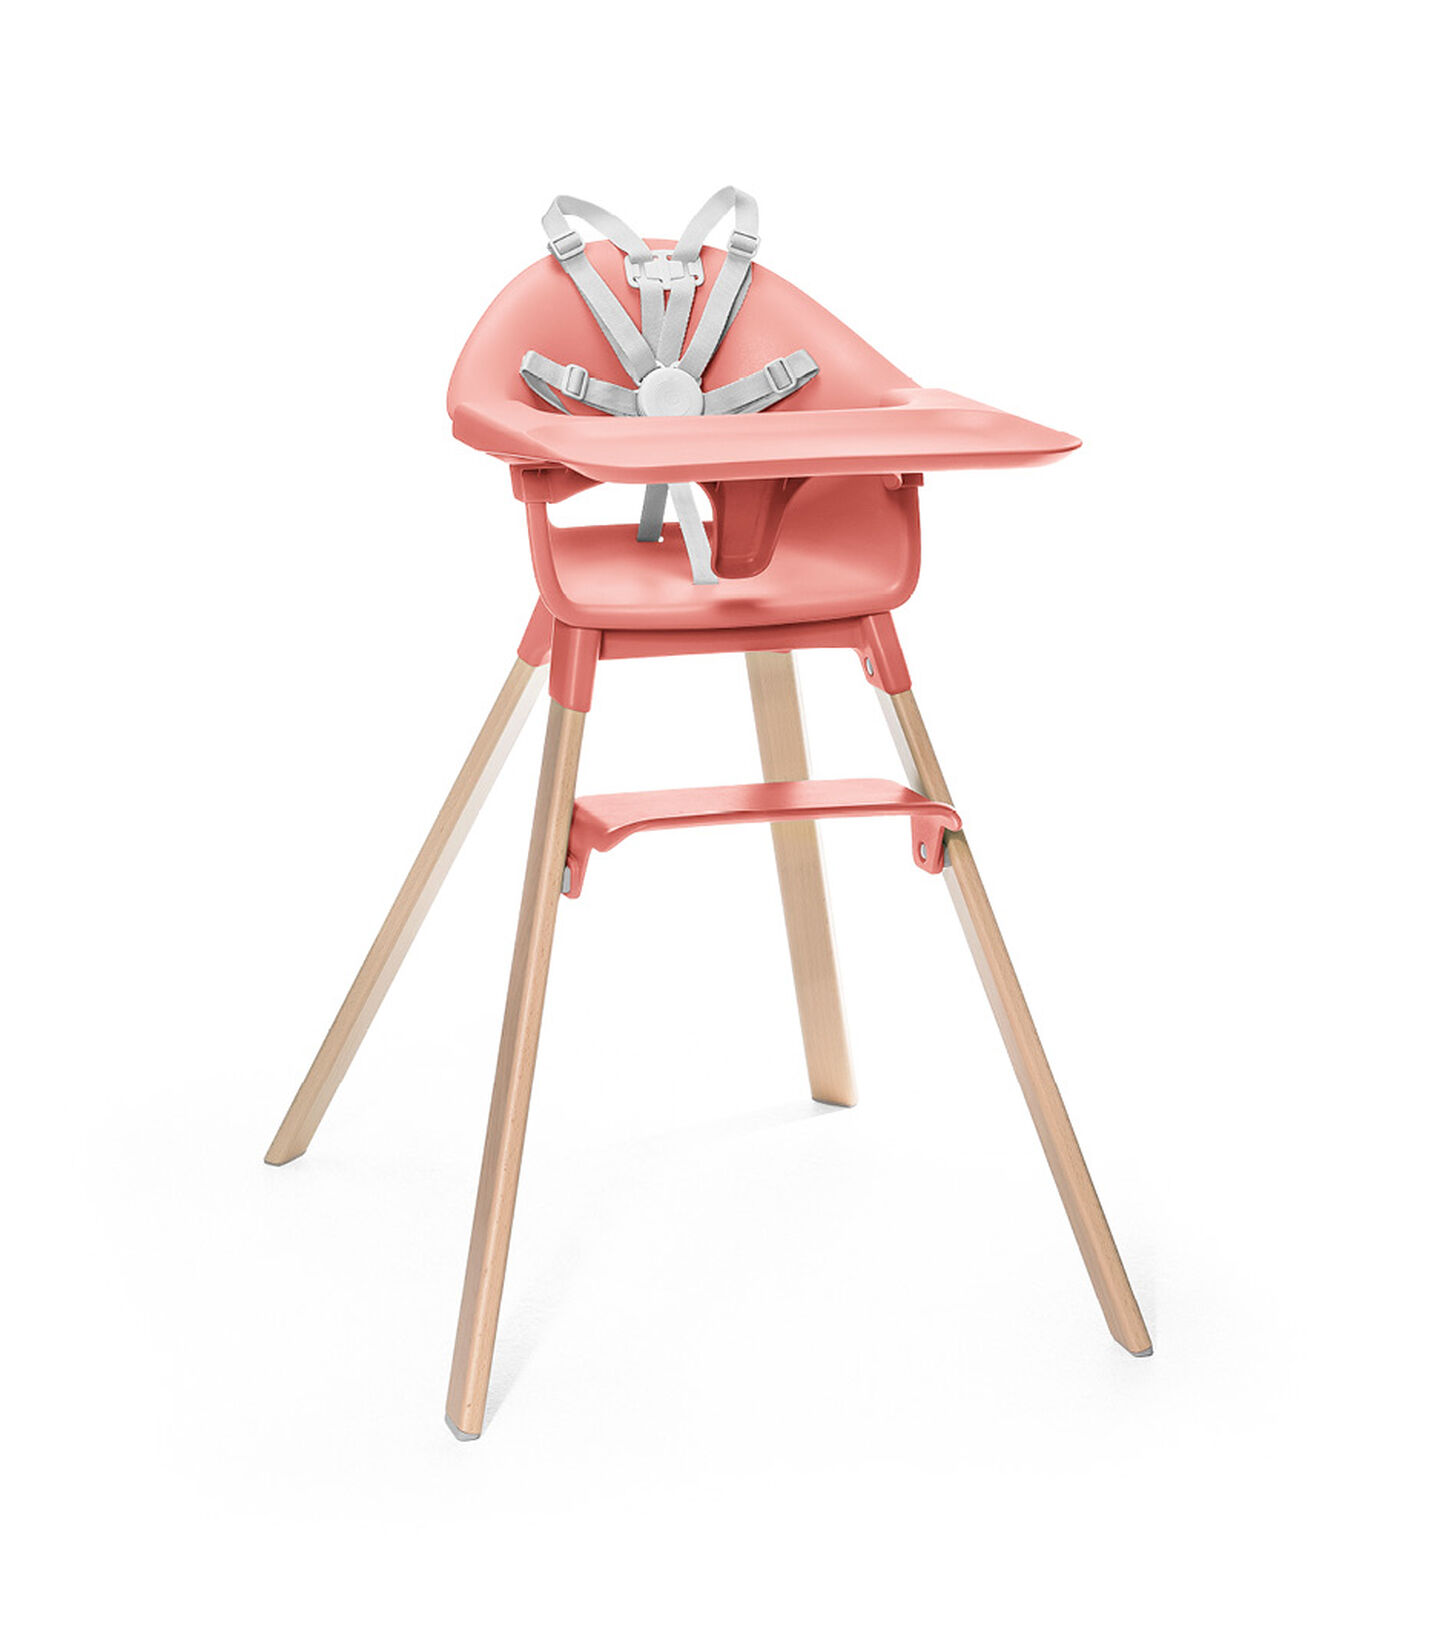 Stokke® Clikk™ High Chair. Natural Beech wood and Sunny Coral plastic parts. Stokke® Harness and Tray attached. view 2